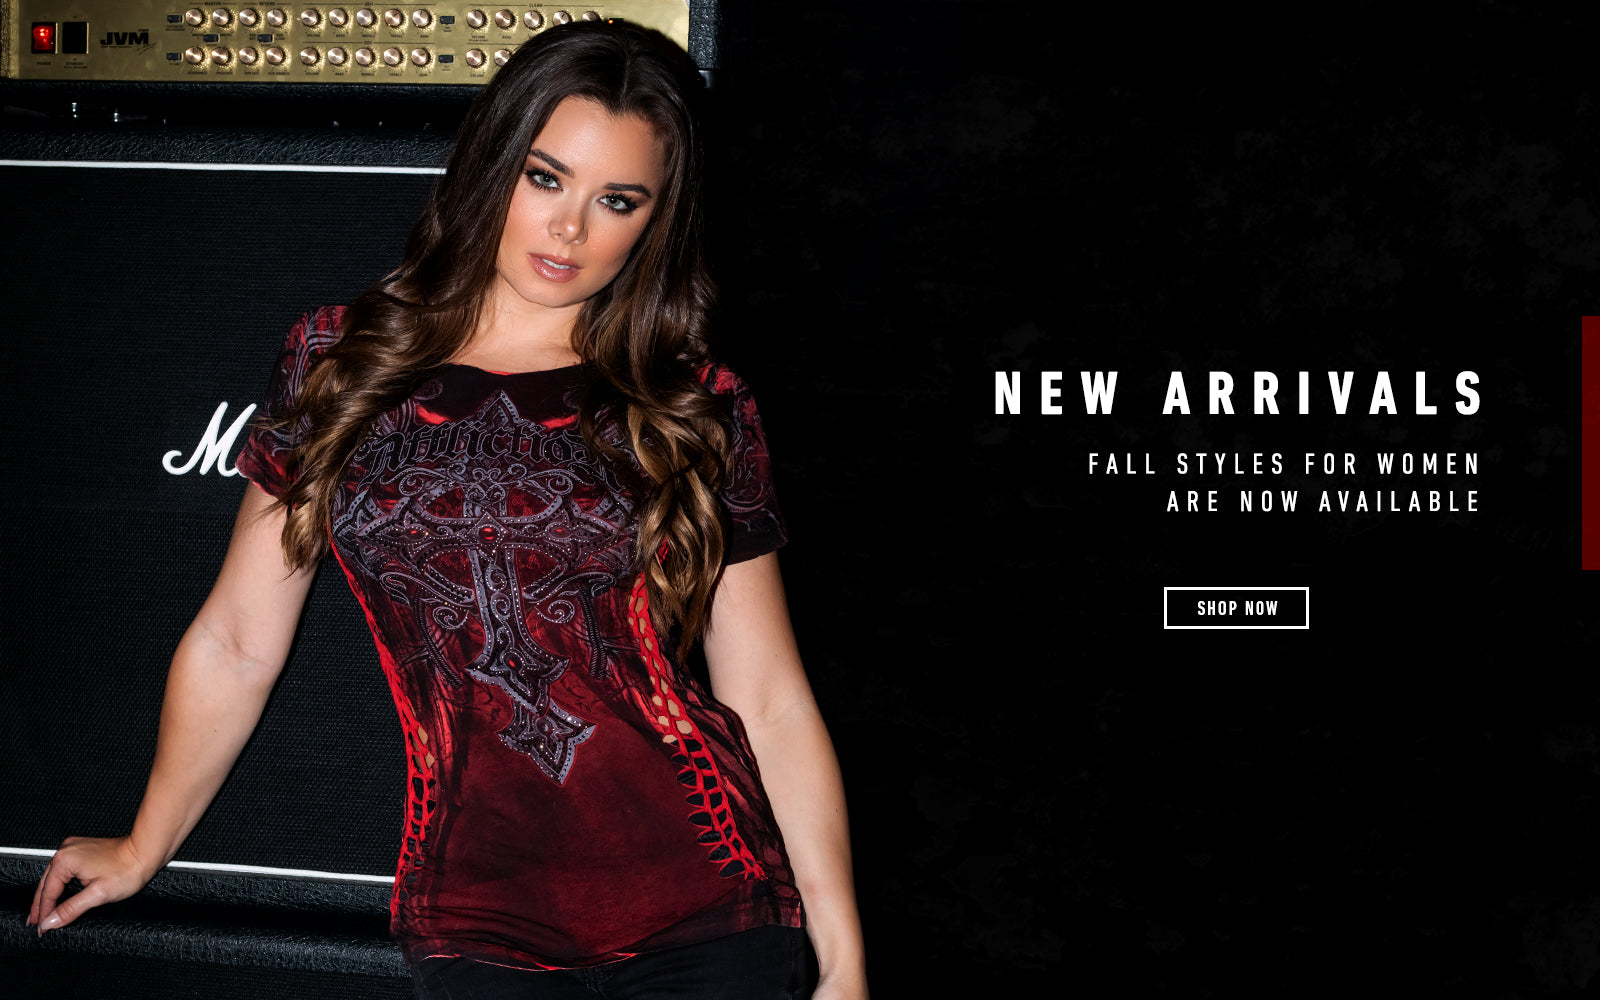 New Arrivals Fall Styles For Women Are Now Available Shop Now